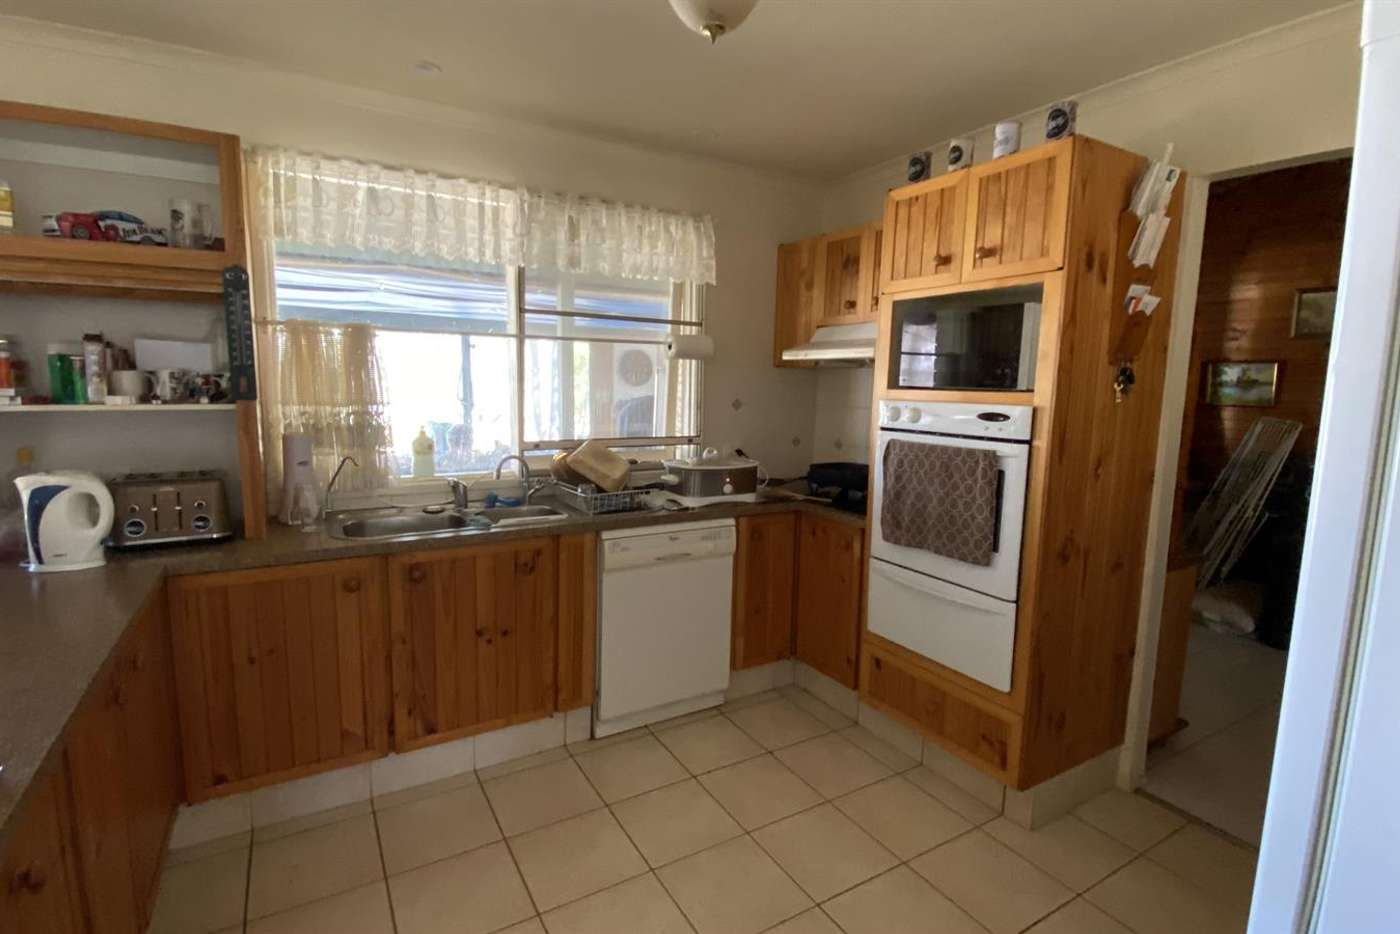 Seventh view of Homely house listing, 5 Church Street, Nanango QLD 4615